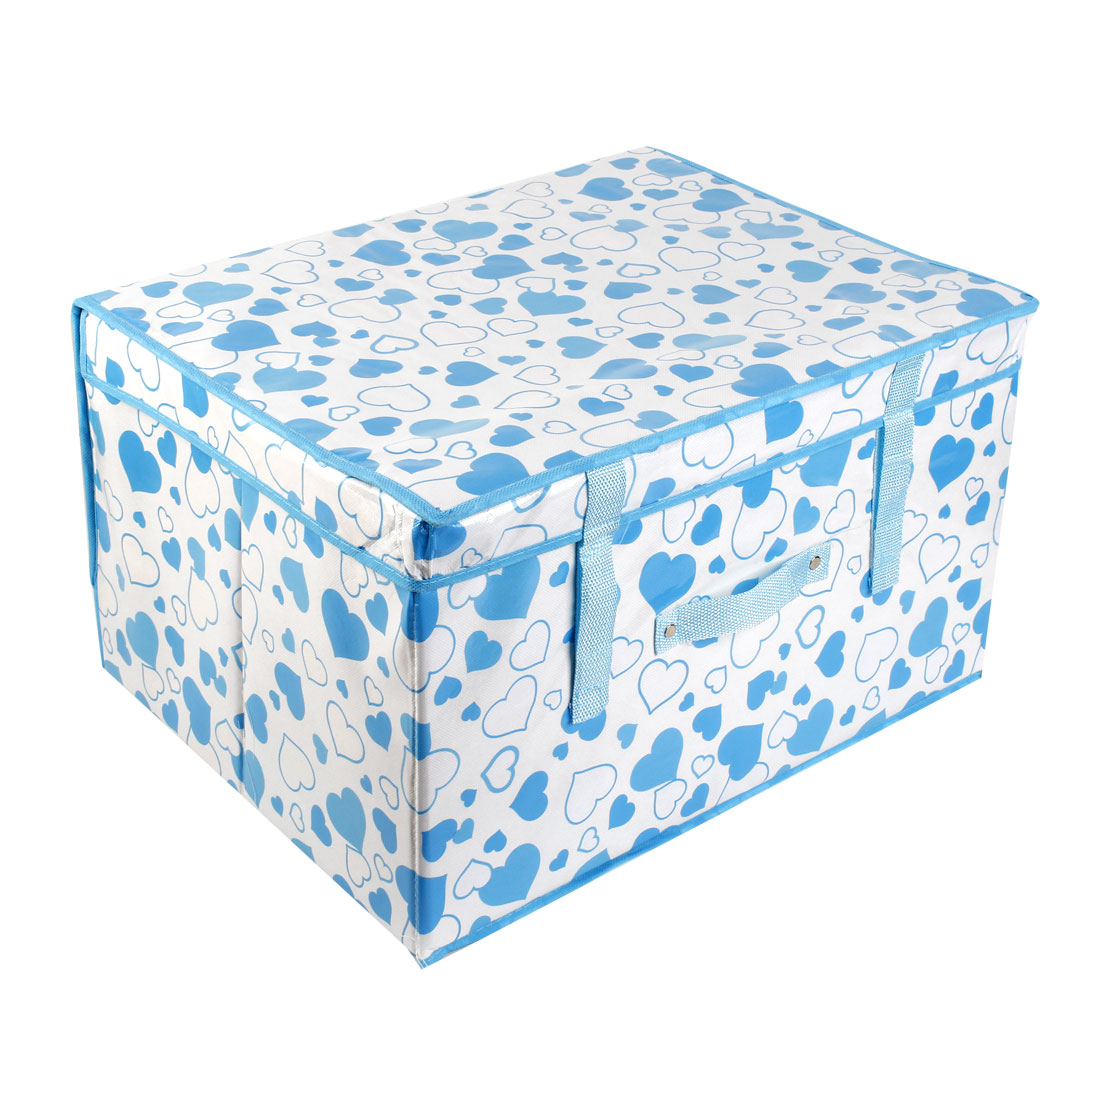 Home Heart Print Blue Nylon Foldable Storage Organizer Case Box